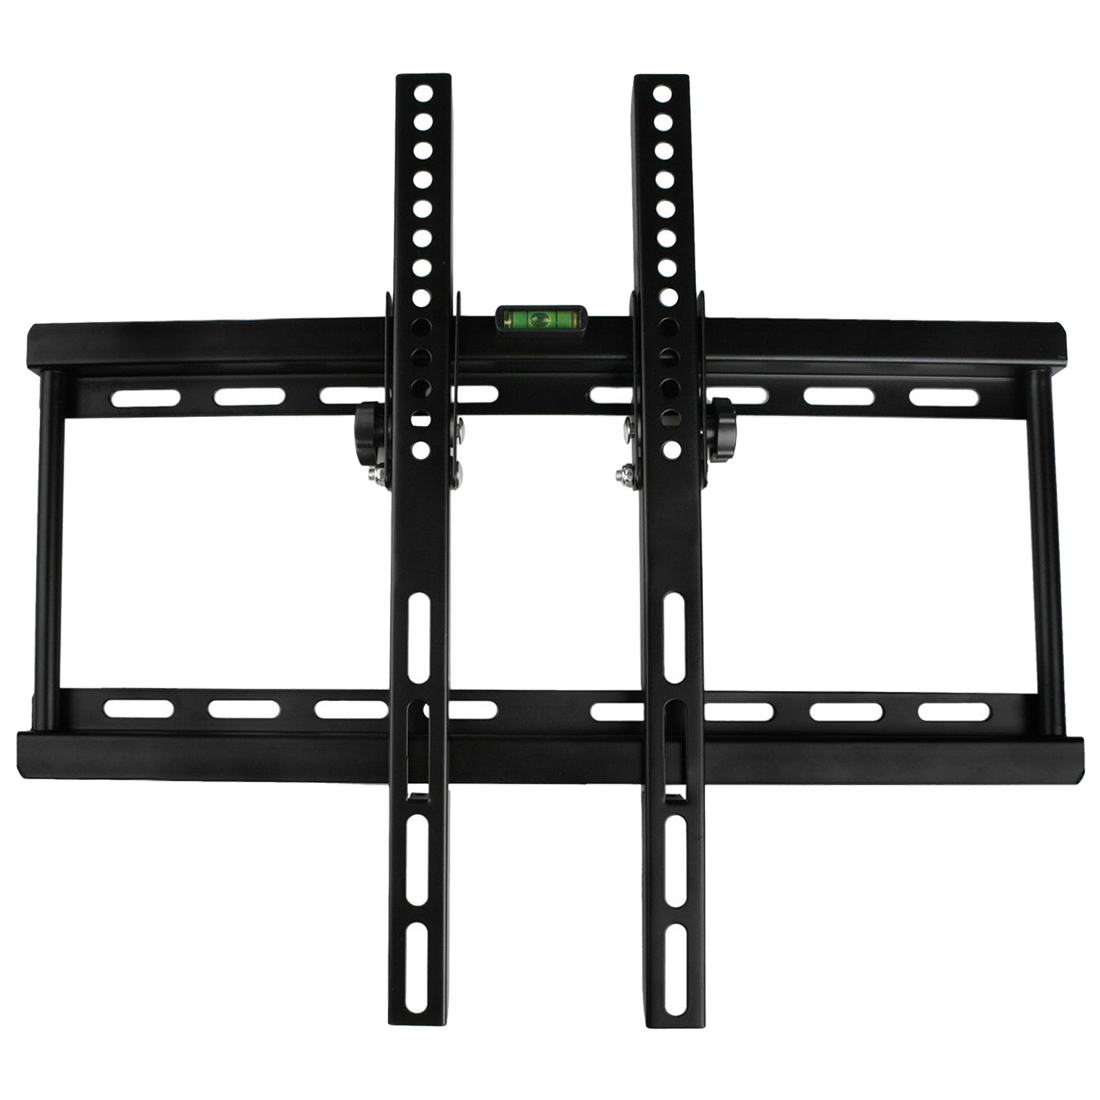 Cooperative Ksol Flat Slim Tv Wall Mount Bracket 23 28 30 32 40 42 48 50 55 Inch Led Lcd Plasma Beneficial To Essential Medulla Home Improvement